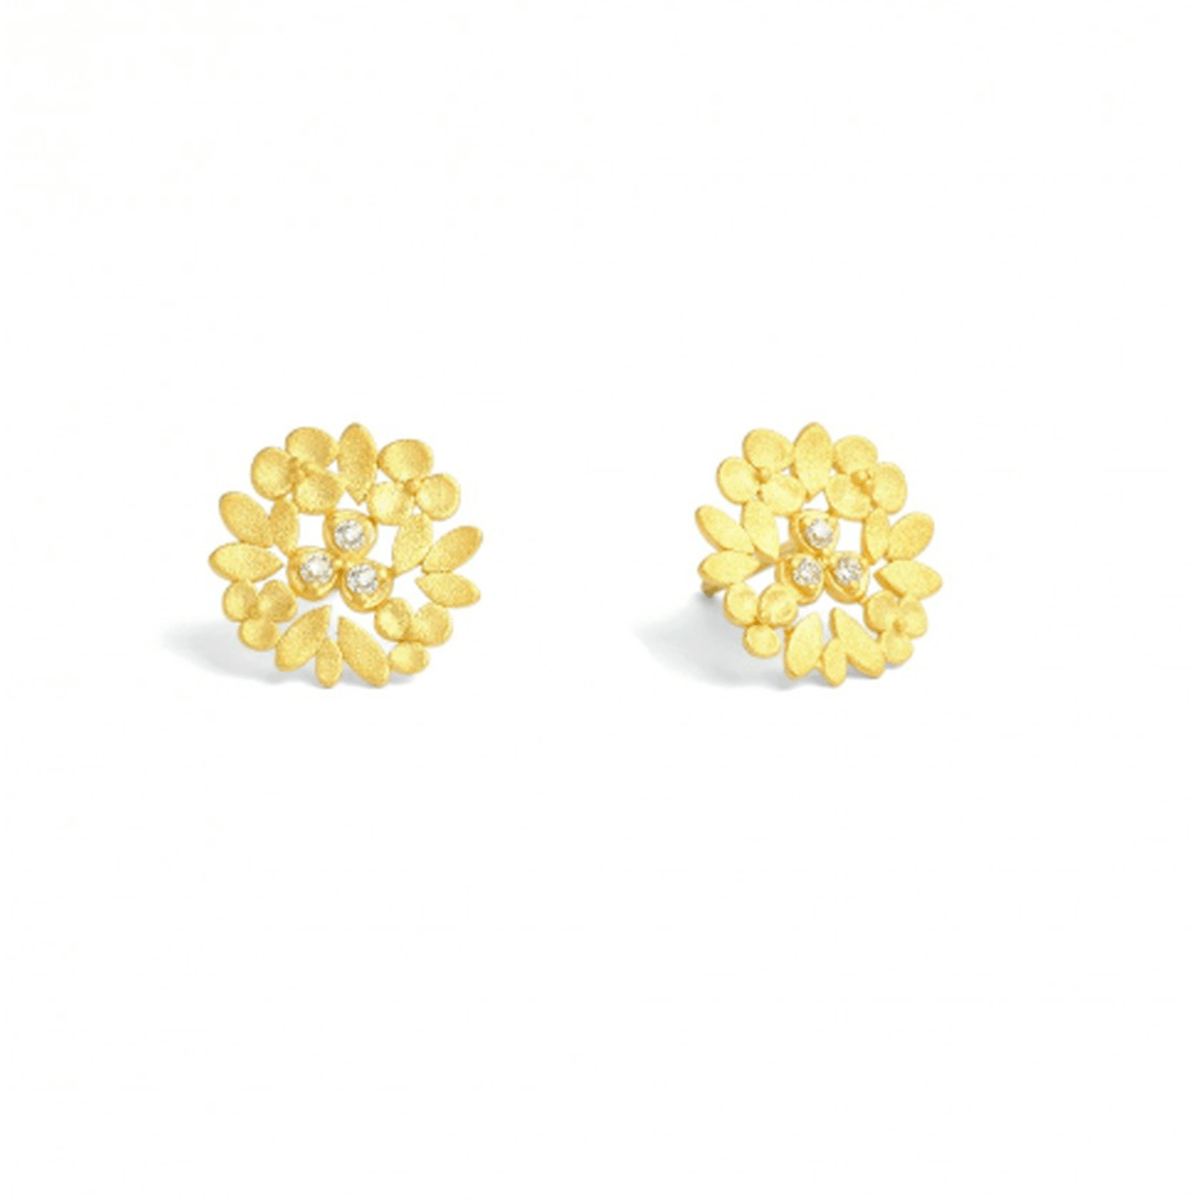 Liami Zirconia Stud Earrings - 19280156 - Bernd Wolf